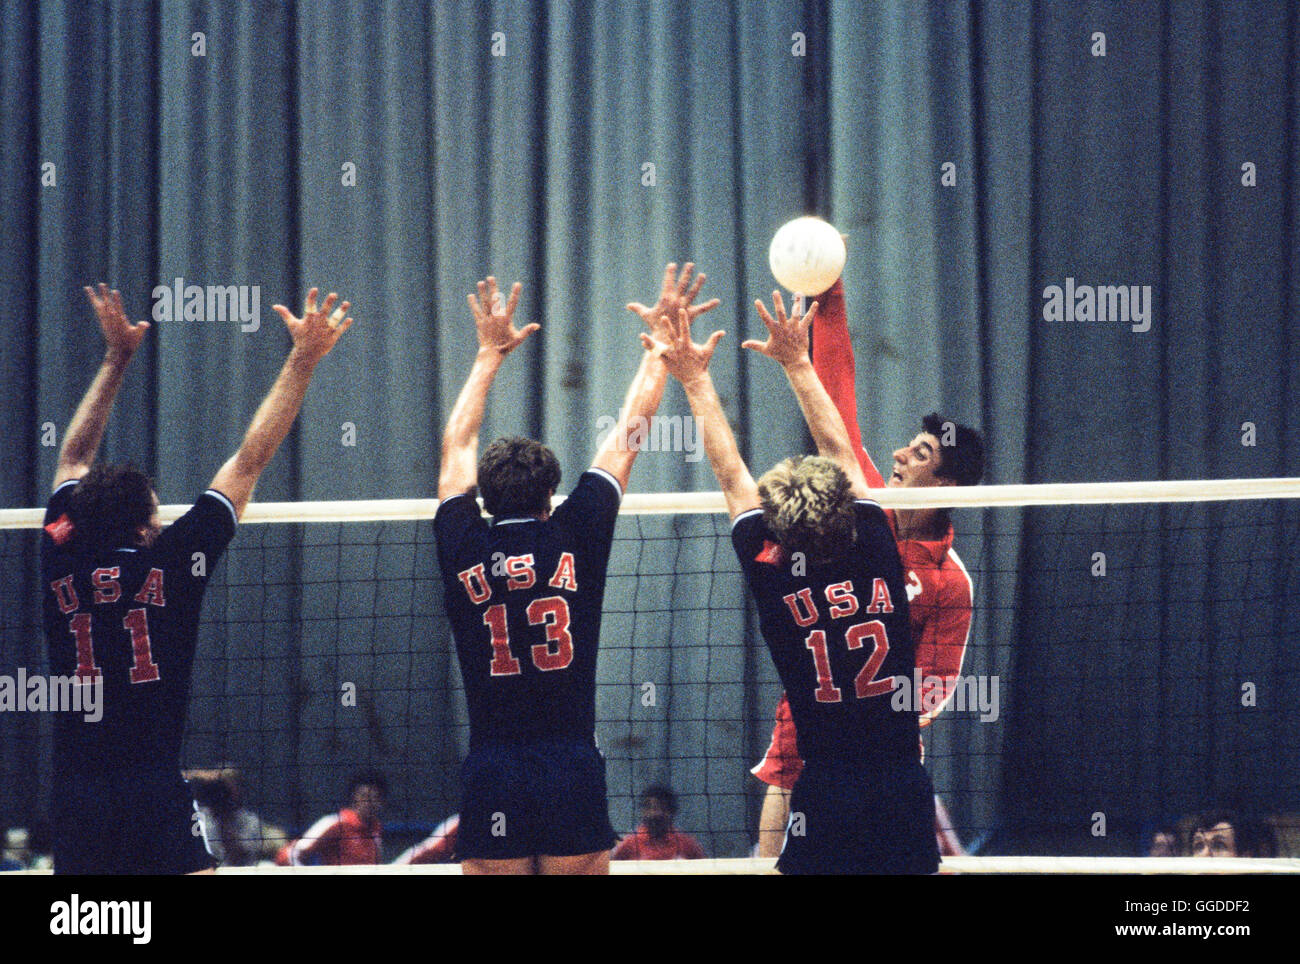 USA men's 1984 L'équipe de volley-ball olympique en action à Long Beach Arena Banque D'Images